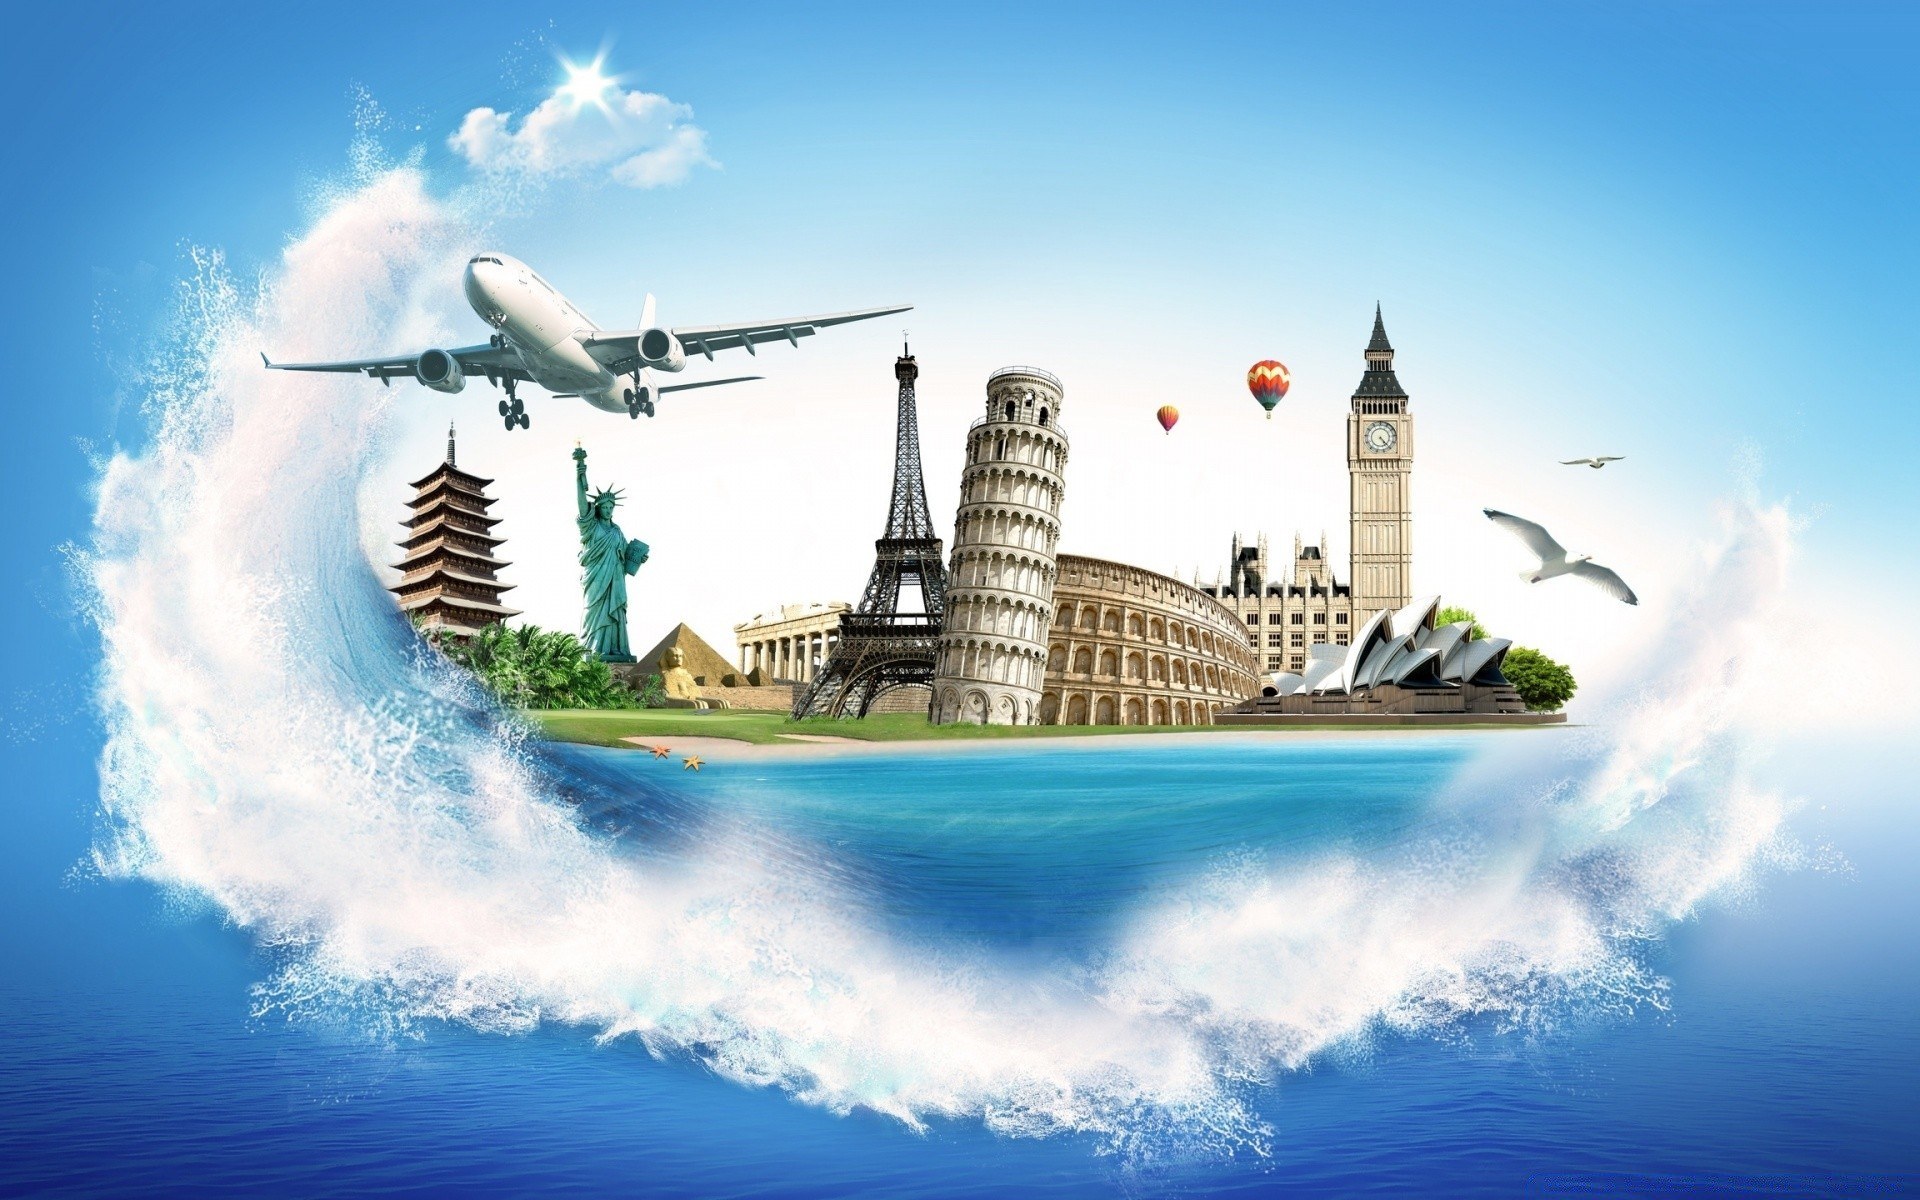 contemporary issues in travel and tourism Contemporary issues in travel & tourism purpose of this assignment this assignment gives a learner the opportunity to gain understanding of current issues and trends, and the impacts of and responses to change in travel and tourism.